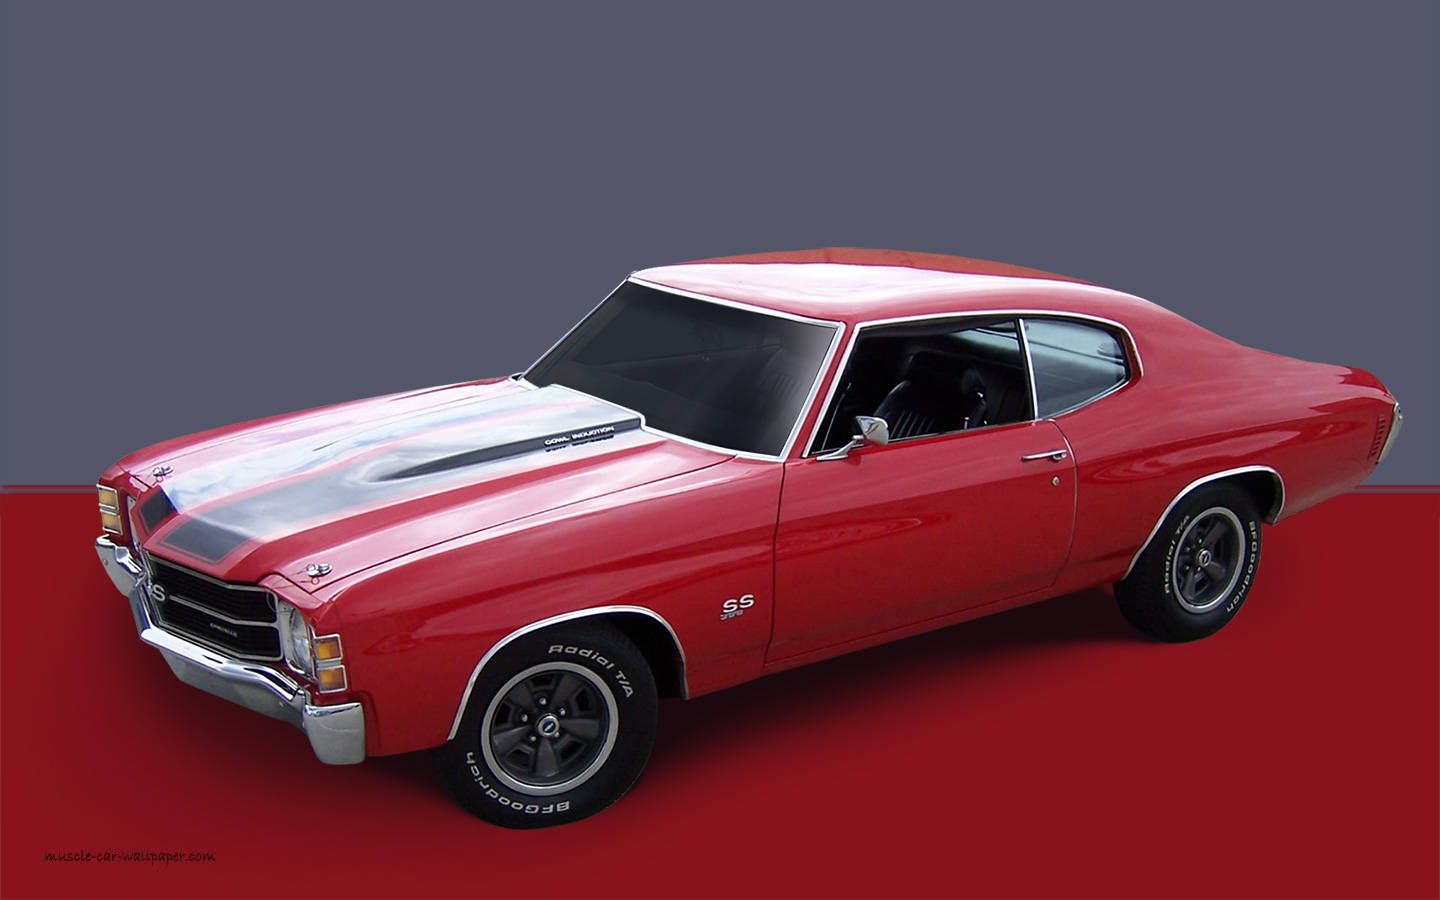 chevelle ss wallpaper 1971 red coupe 1440 05 chevelle muscle cars high 1440x900